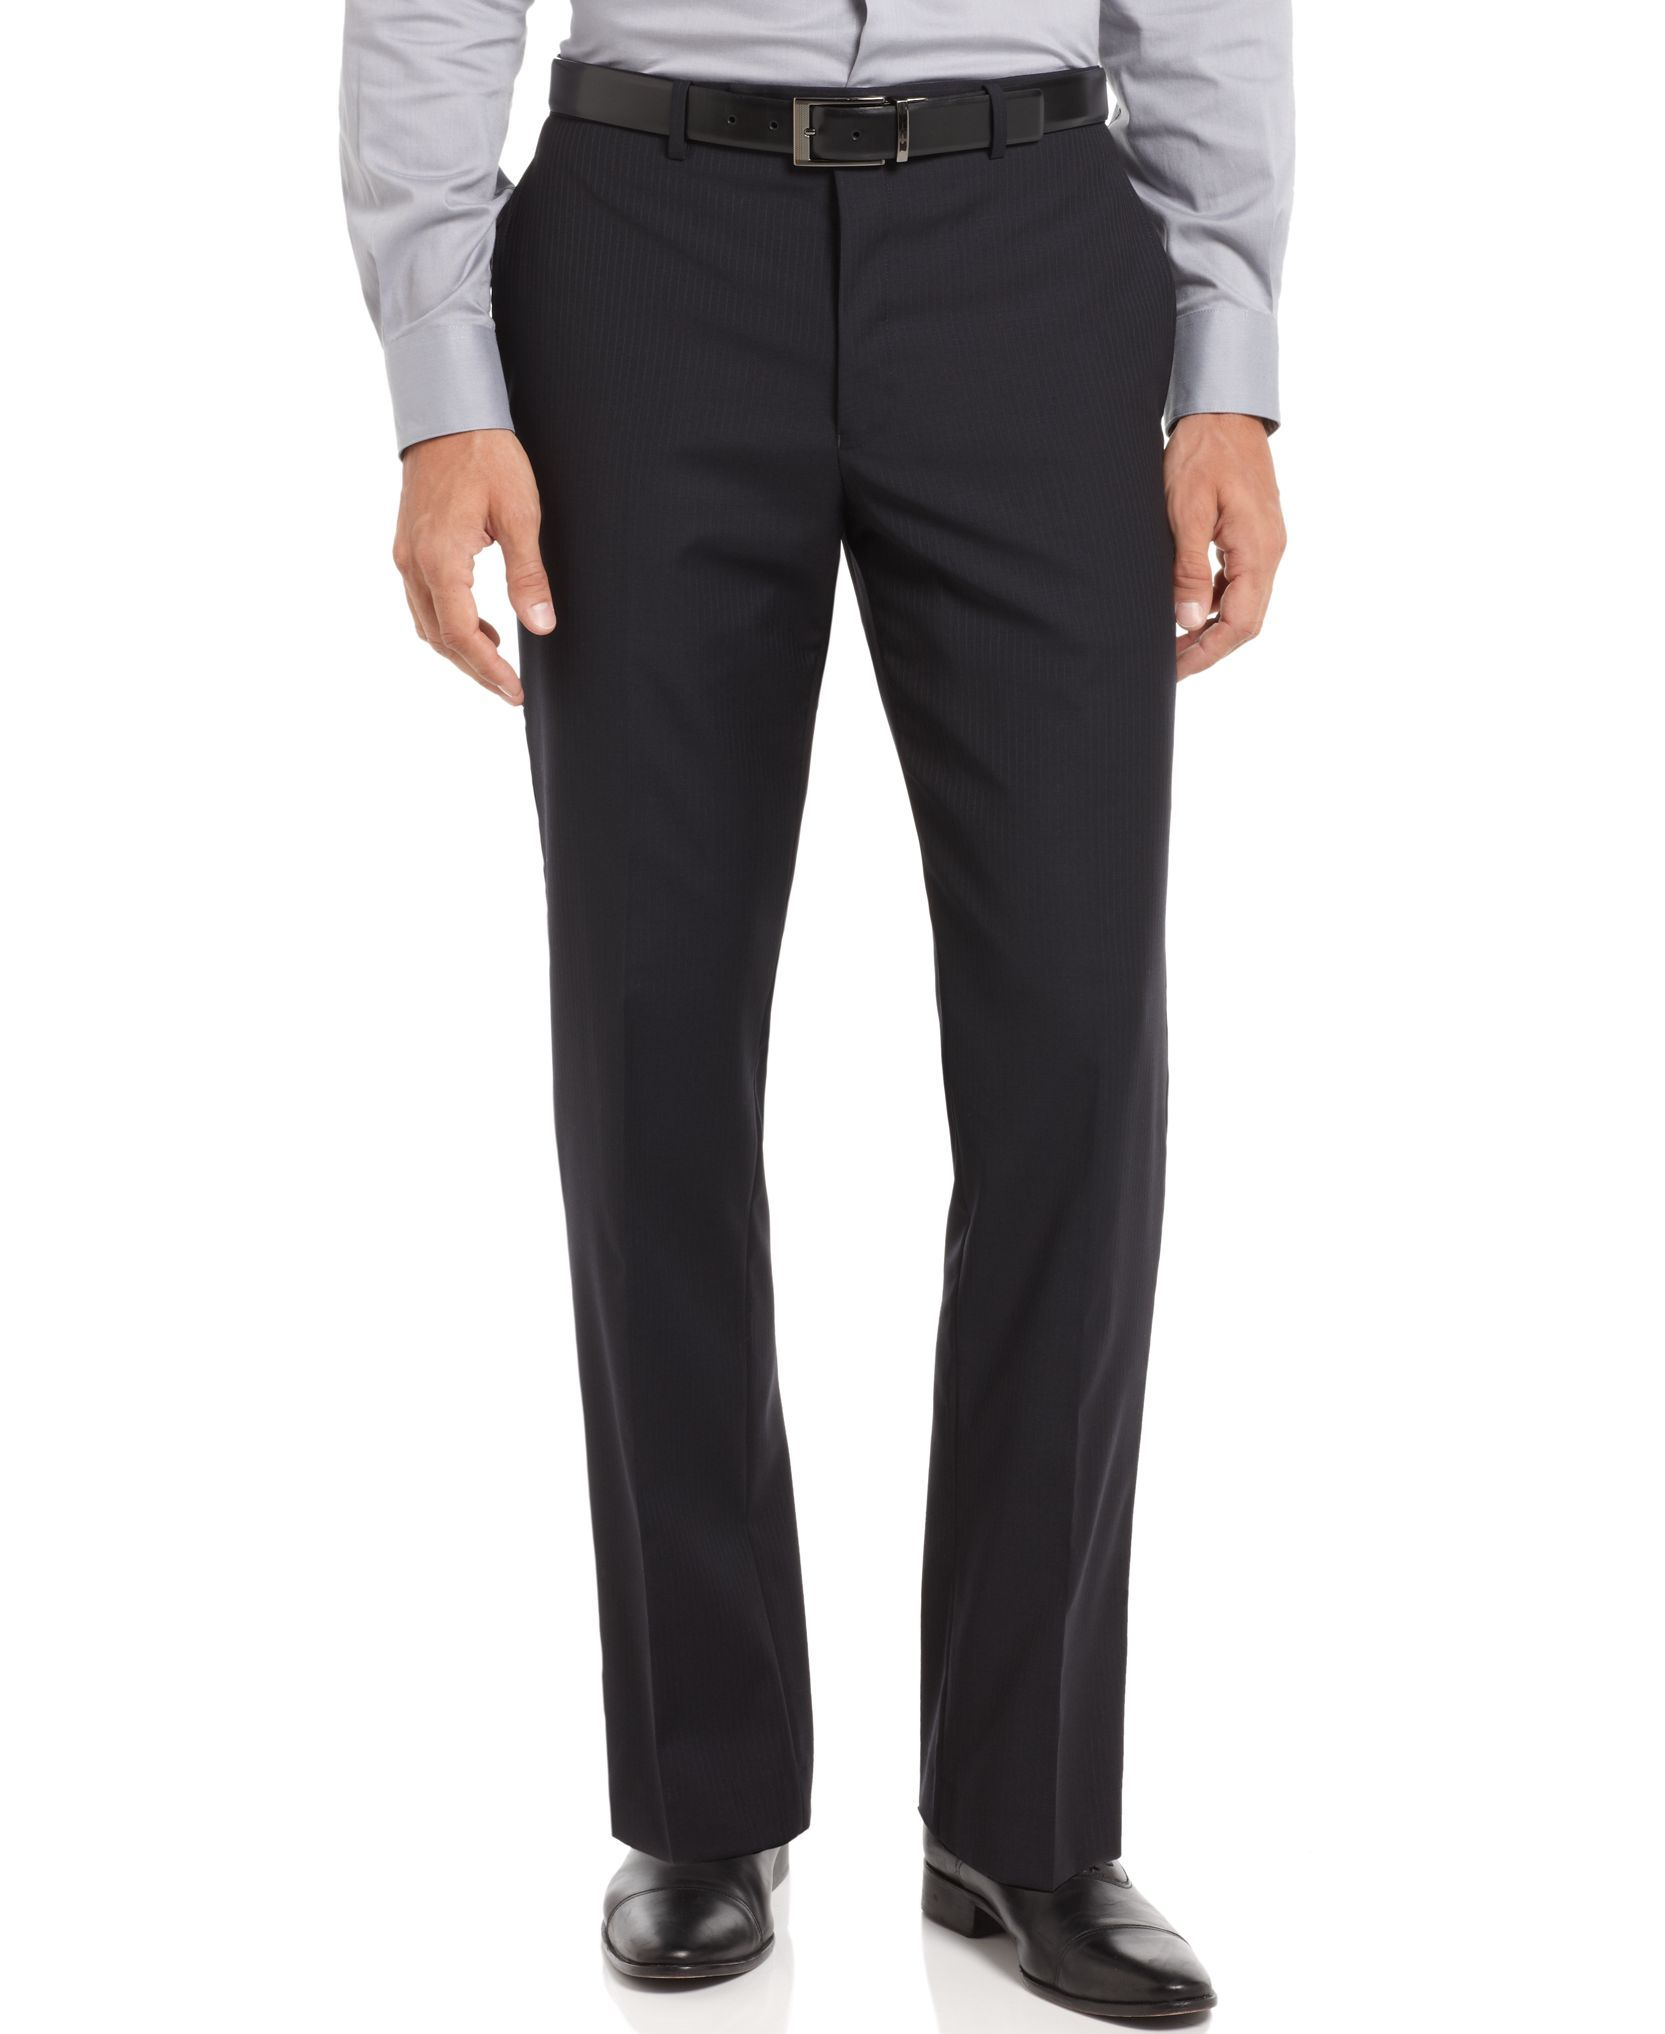 Edwards Mens Business Casual Pleated Pant BLACK 50